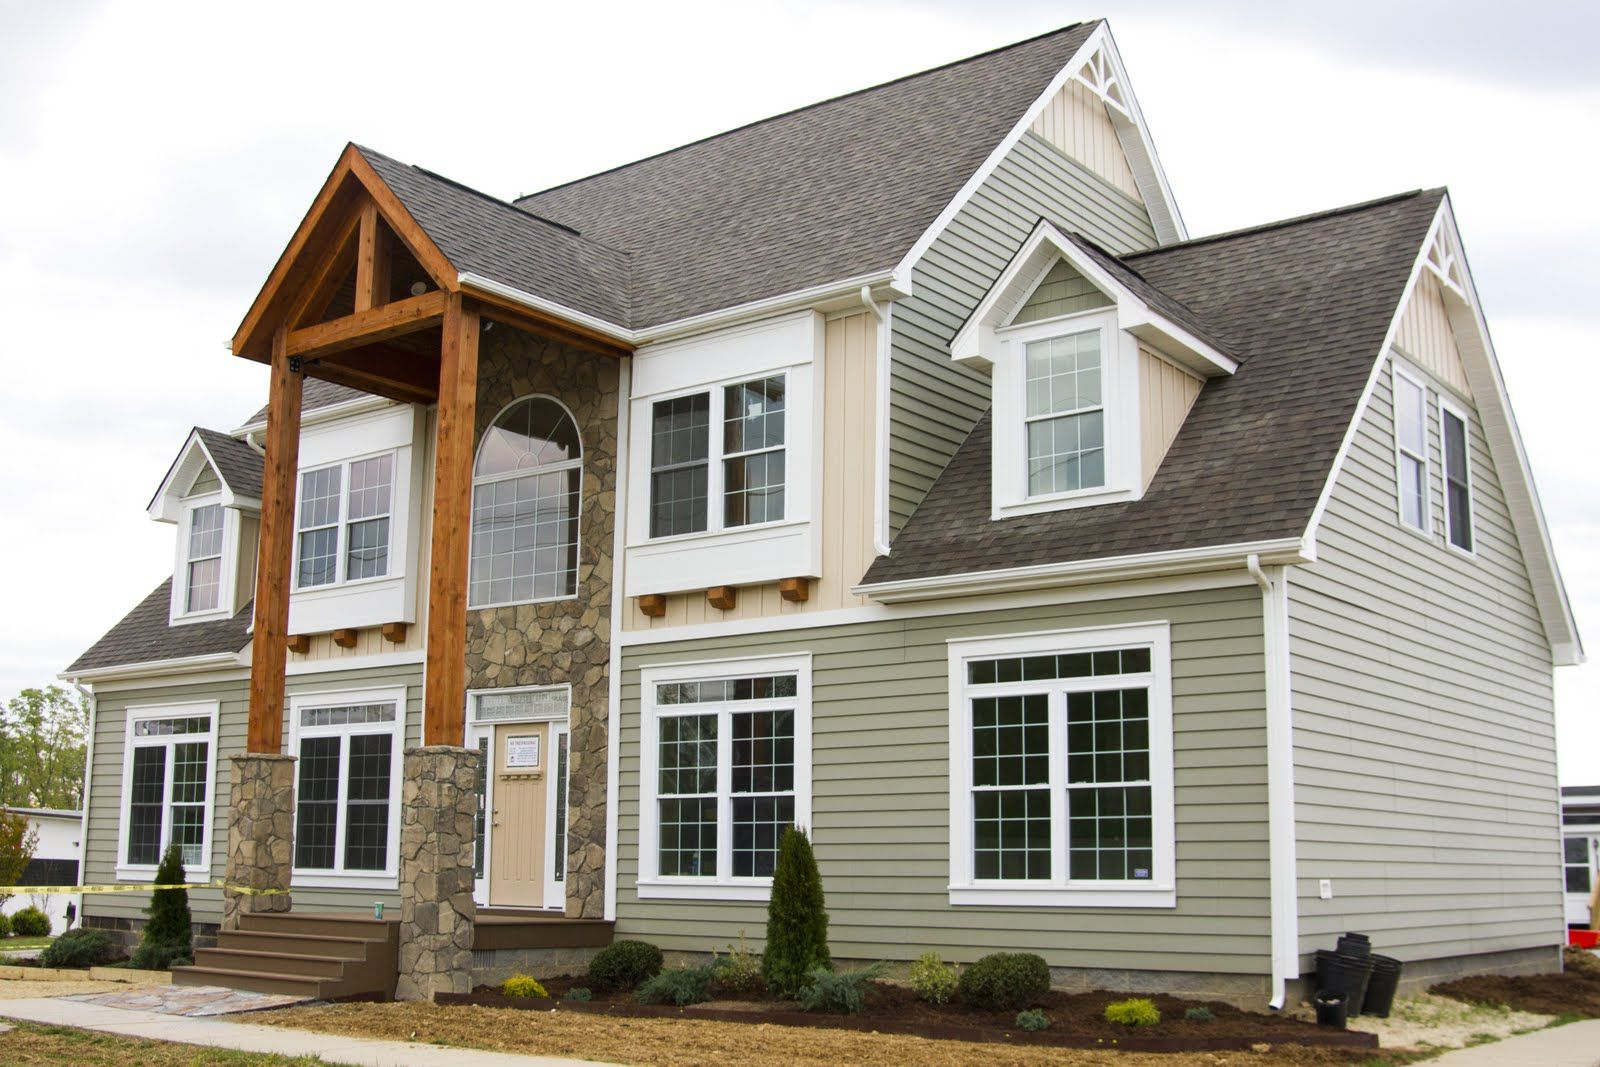 MODULAR HOME BUILDER: Nationwide Homes Opens Interactive Model Home